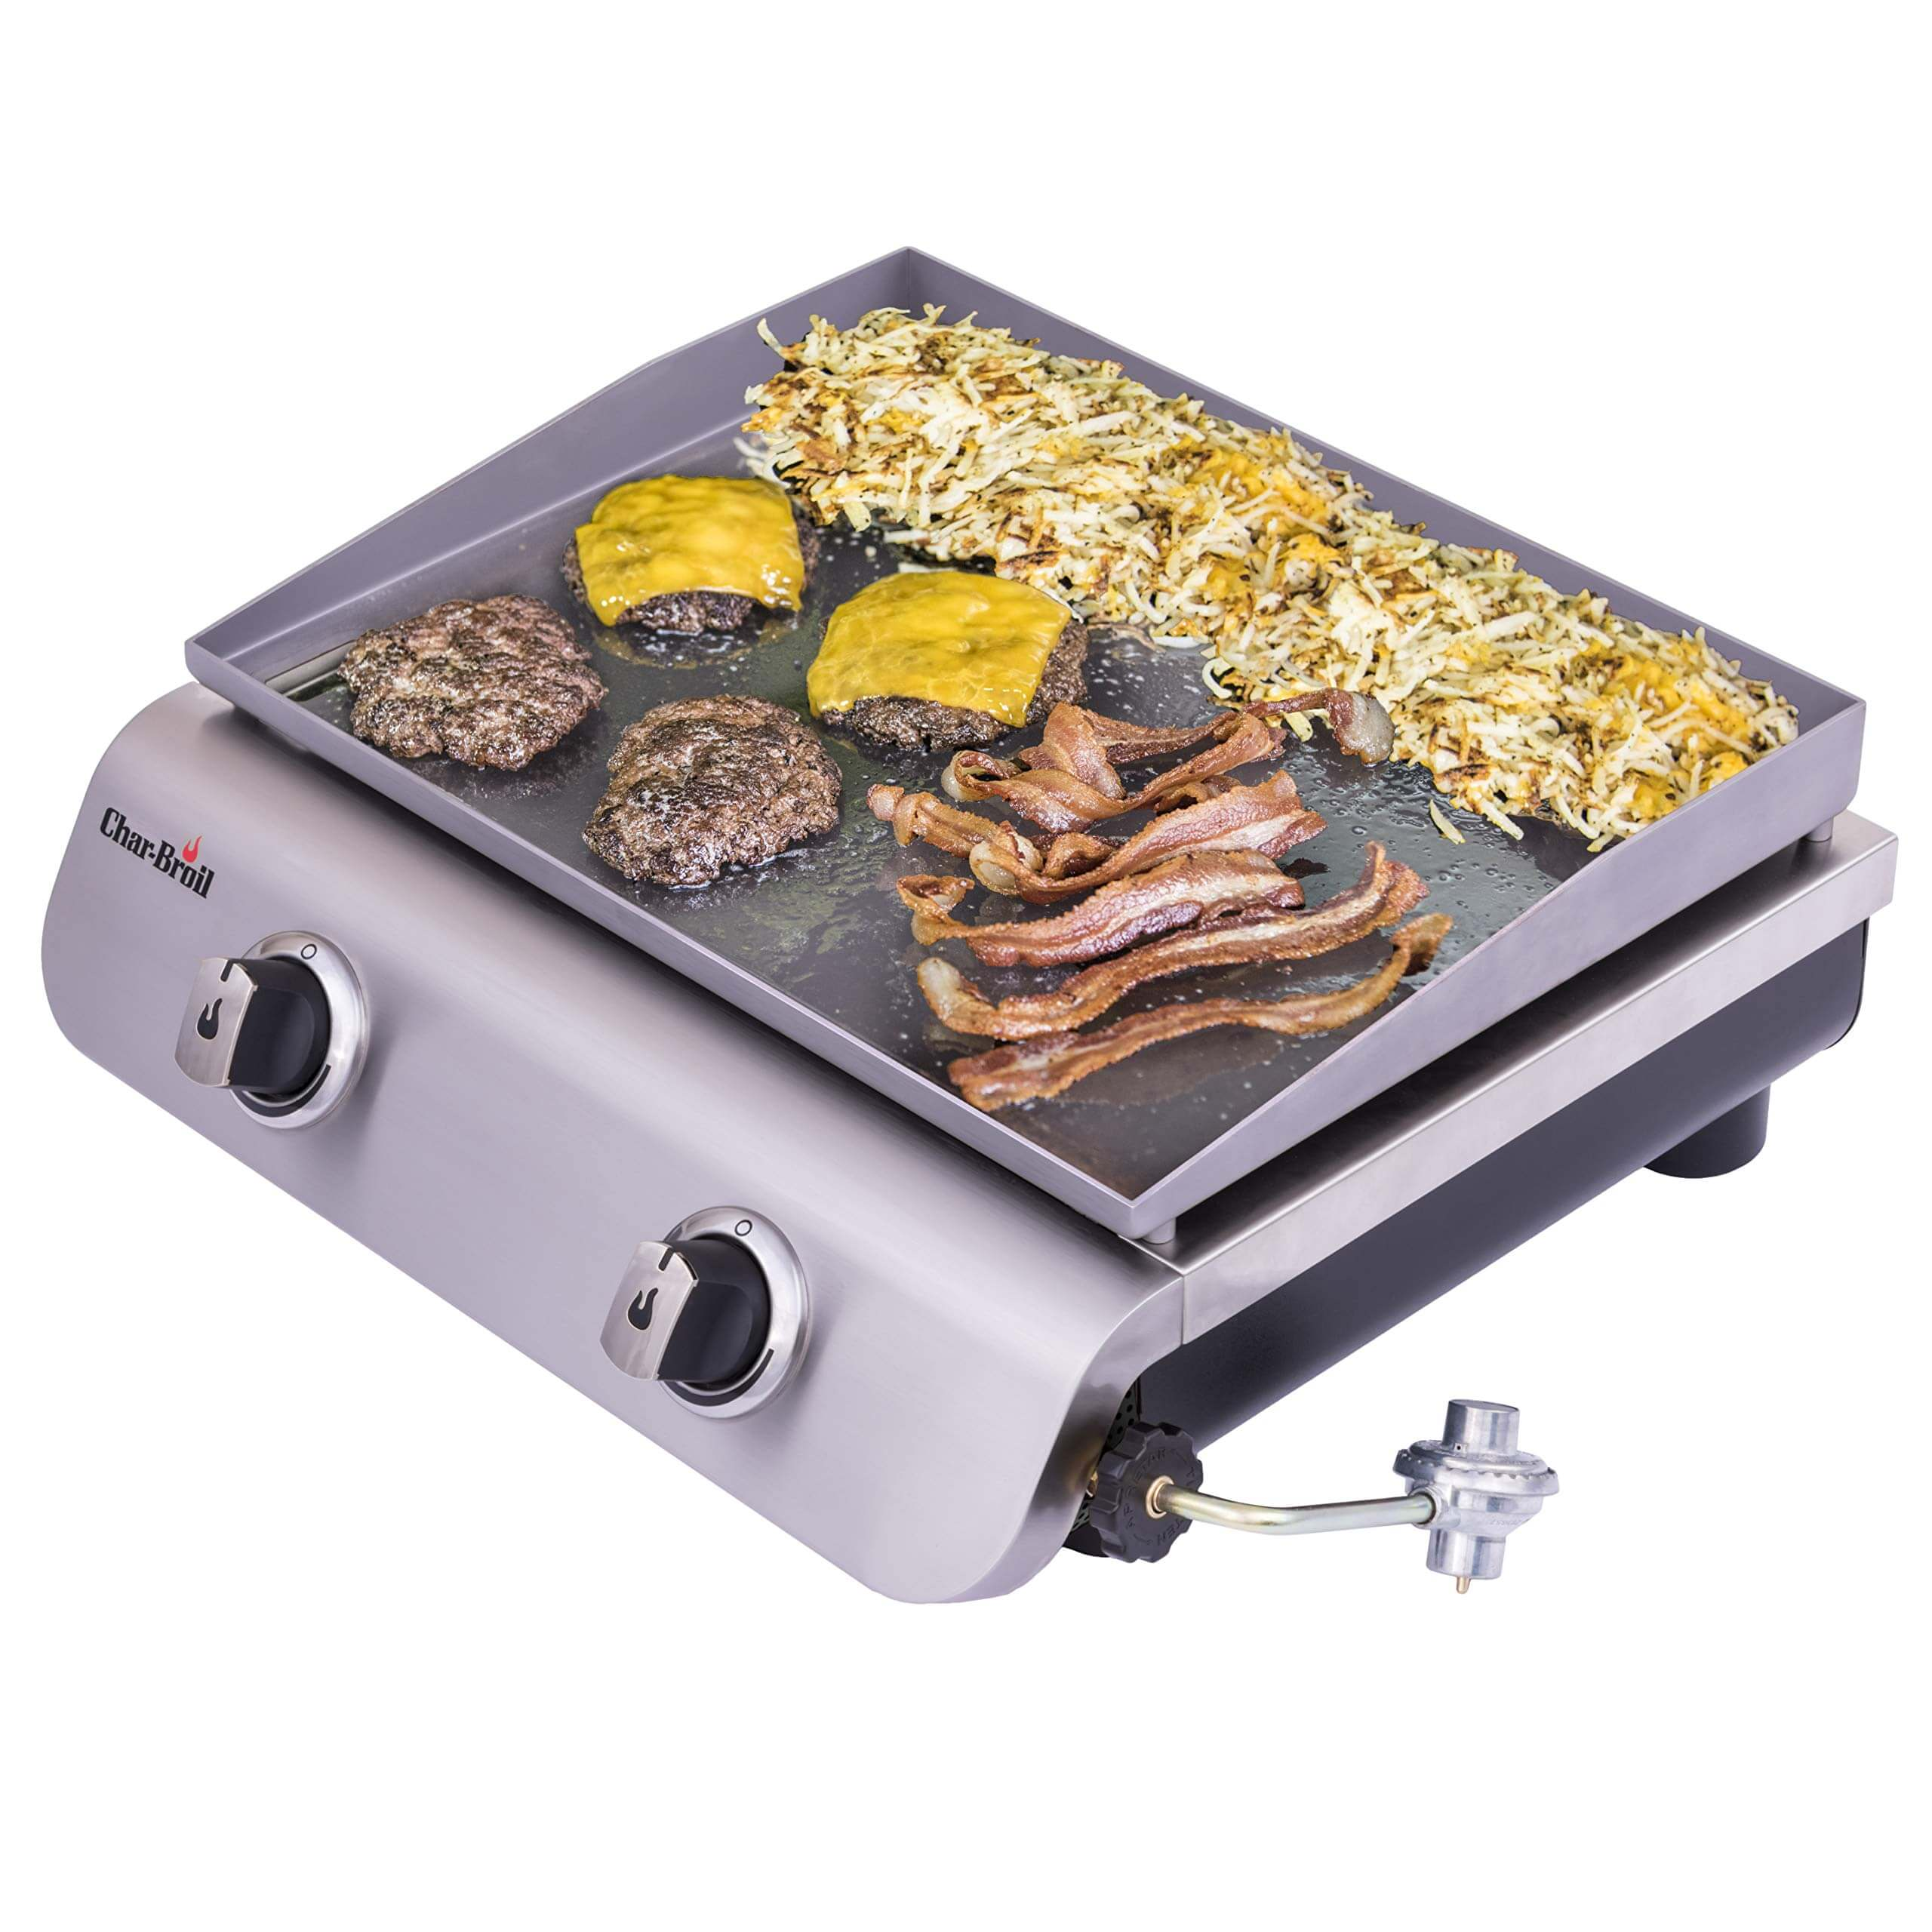 best portable flat top grill, camping griddle, best outdoor griddle, best oil for flat top grill, best barbecue grills, flat top grill